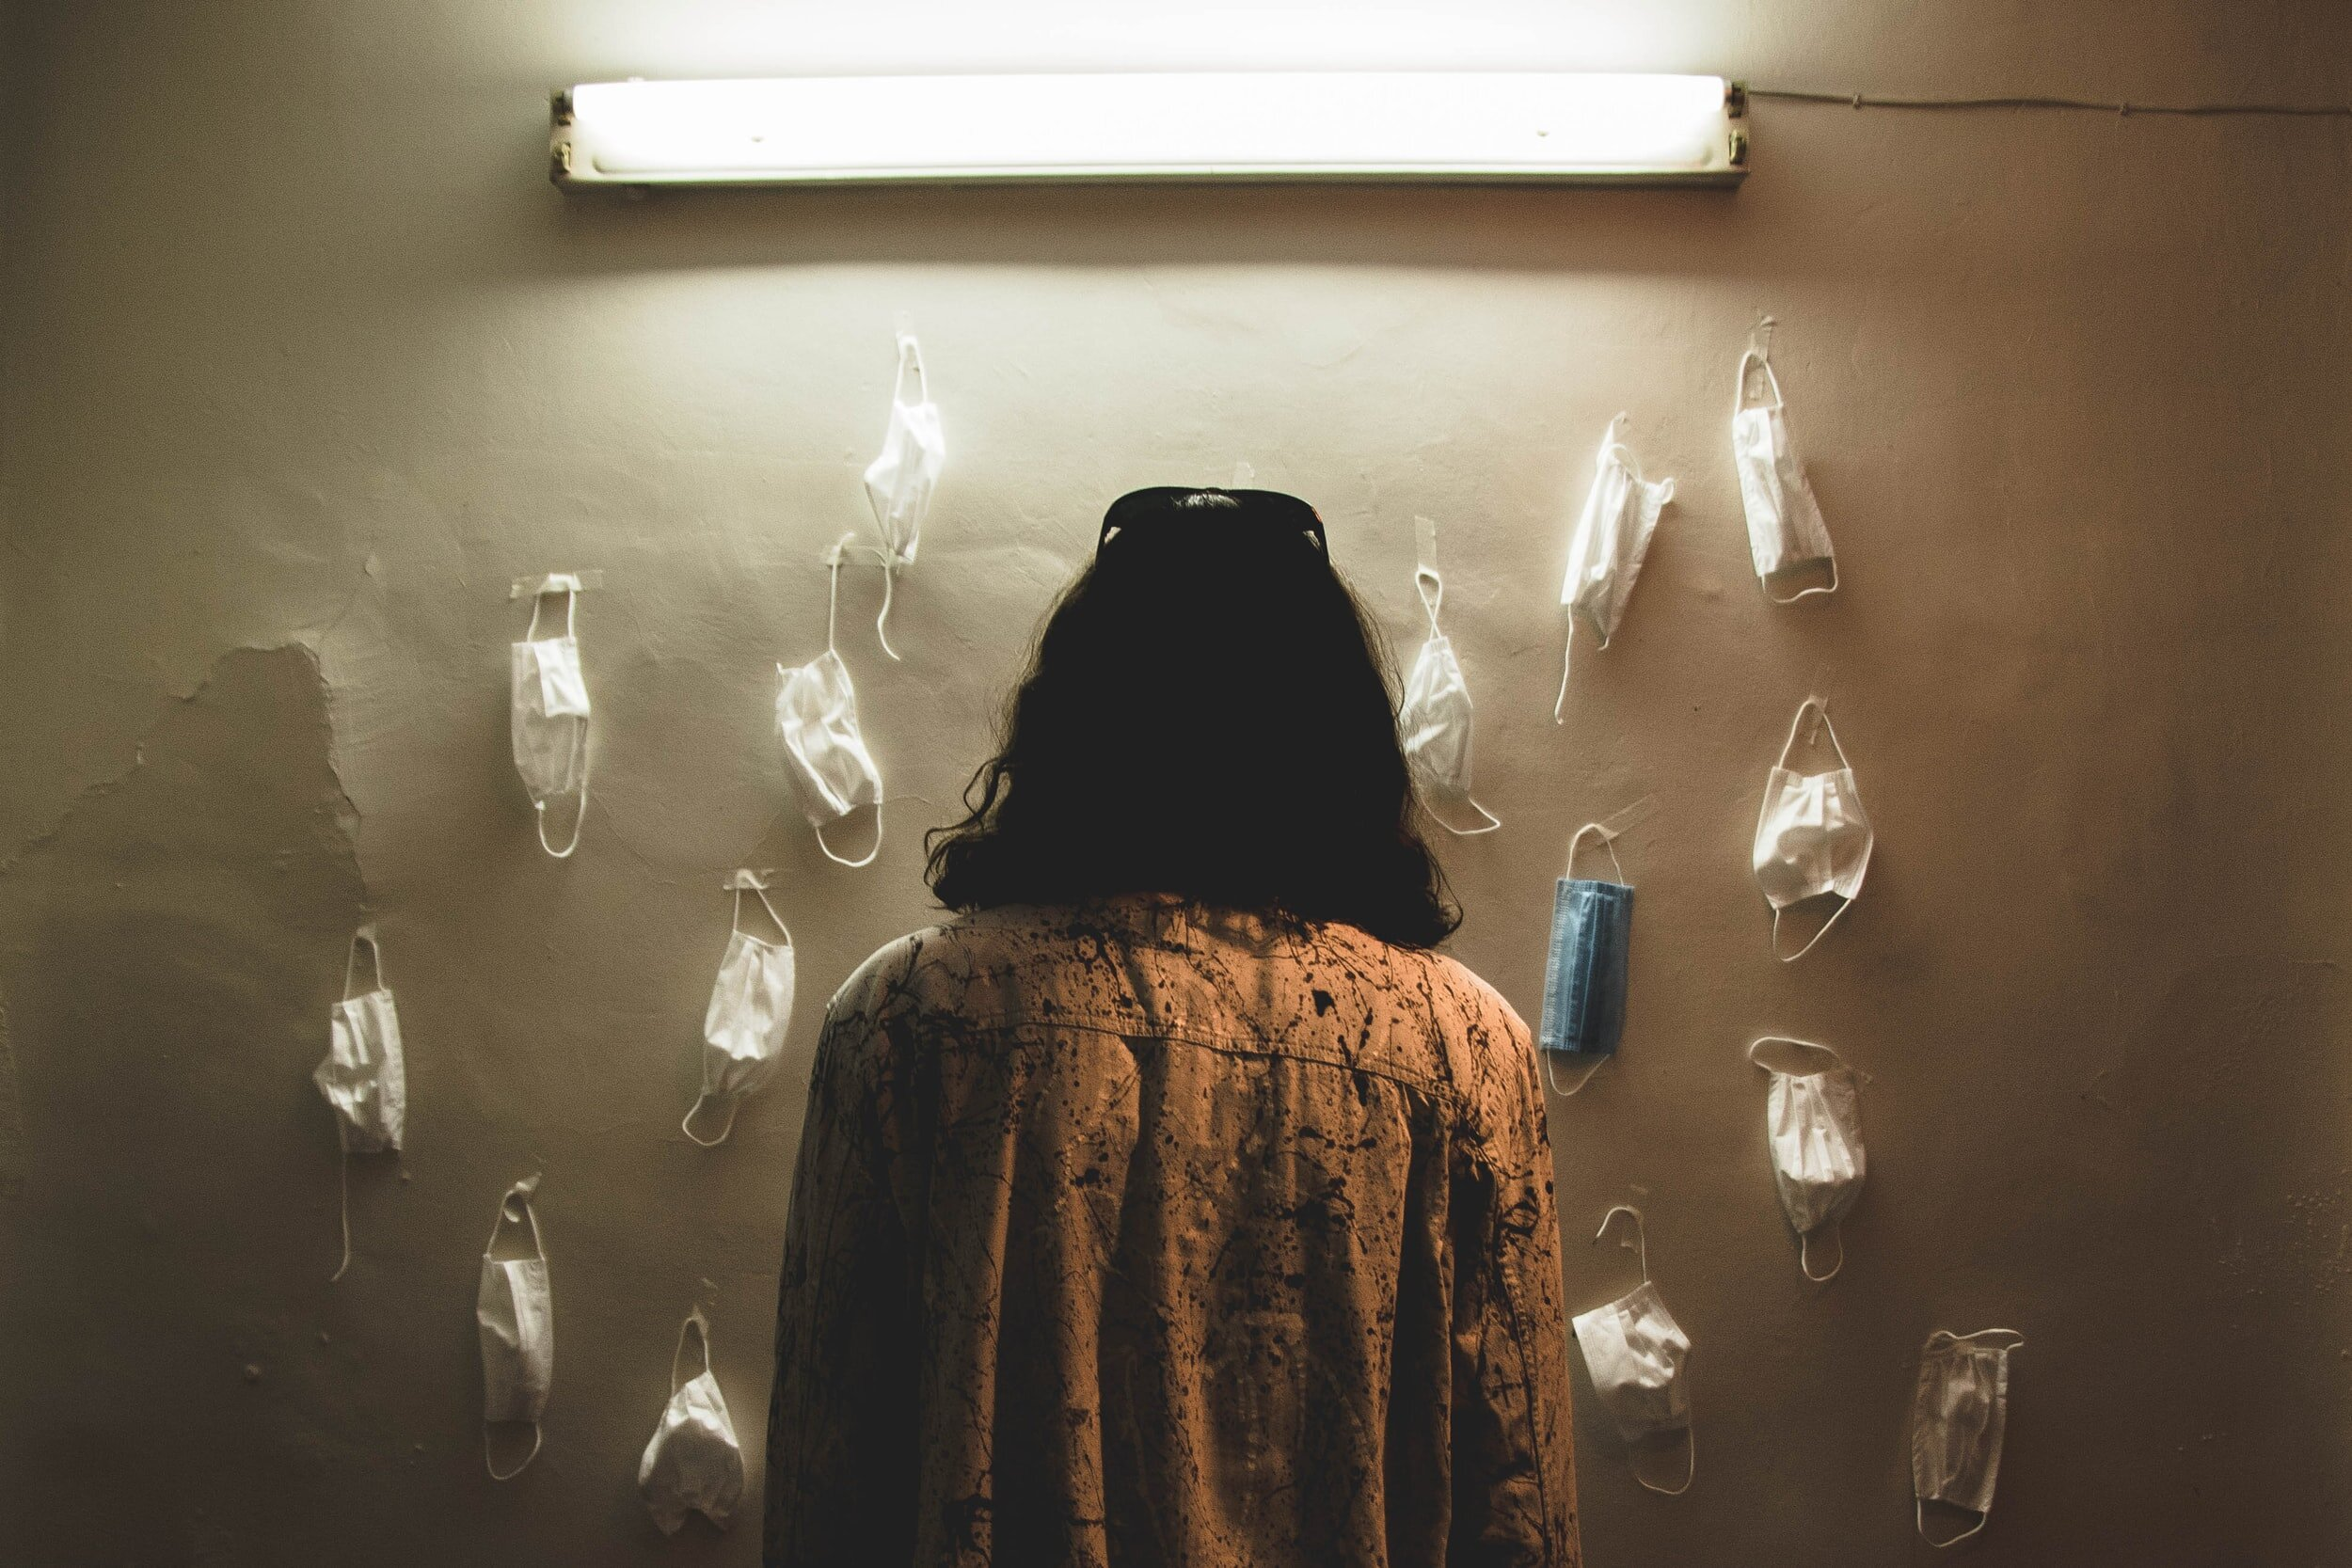 THE IMPACT OF COVID-19 ON HUMAN TRAFFICKING